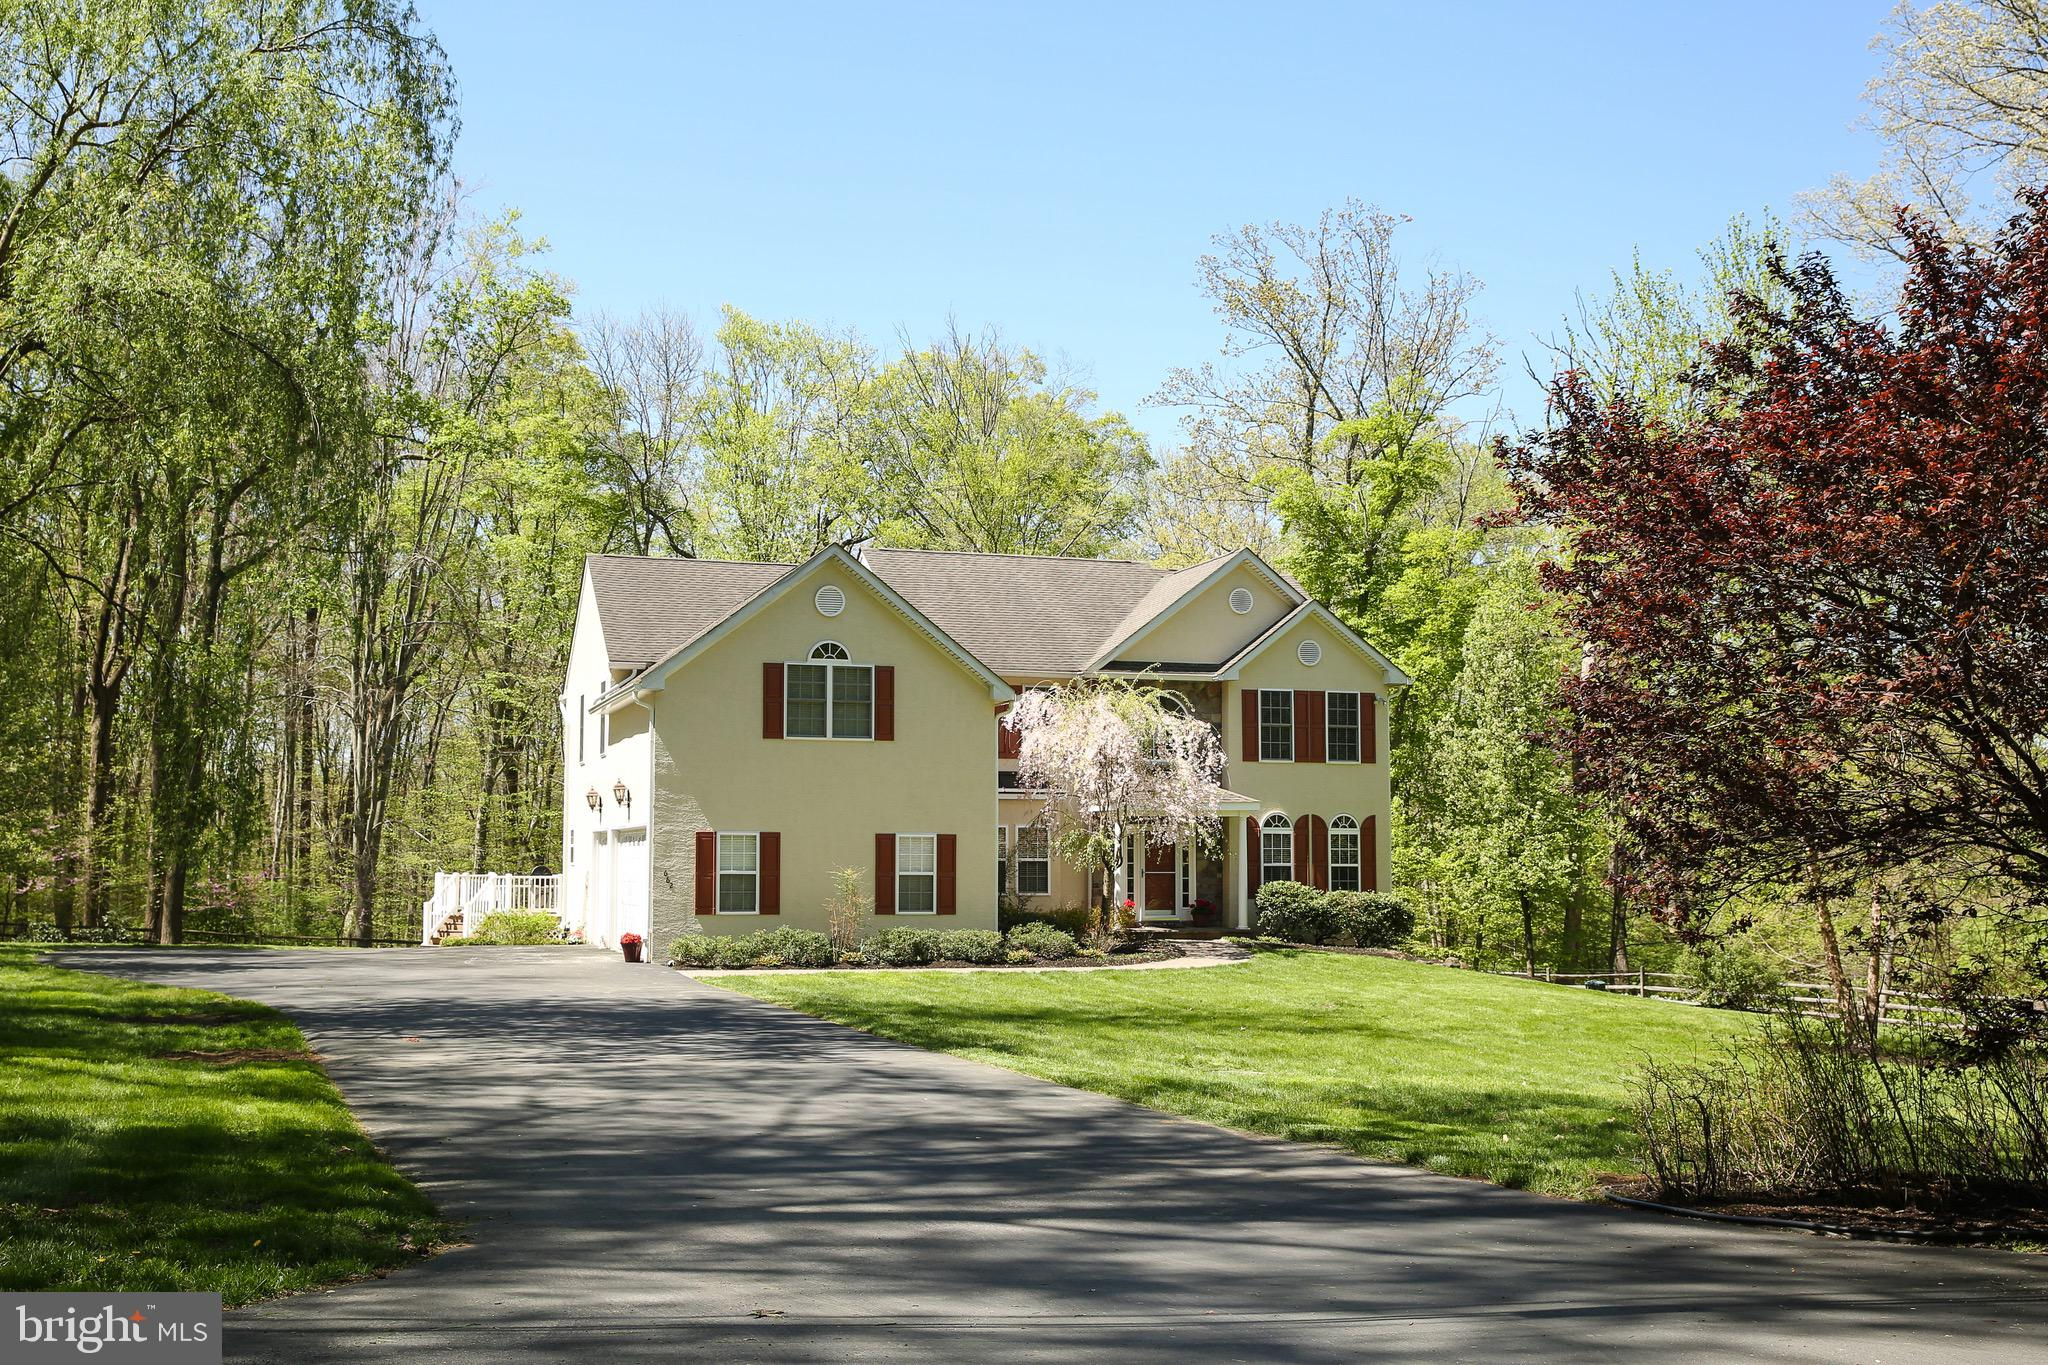 662 RESERVOIR ROAD, WEST CHESTER, PA 19380